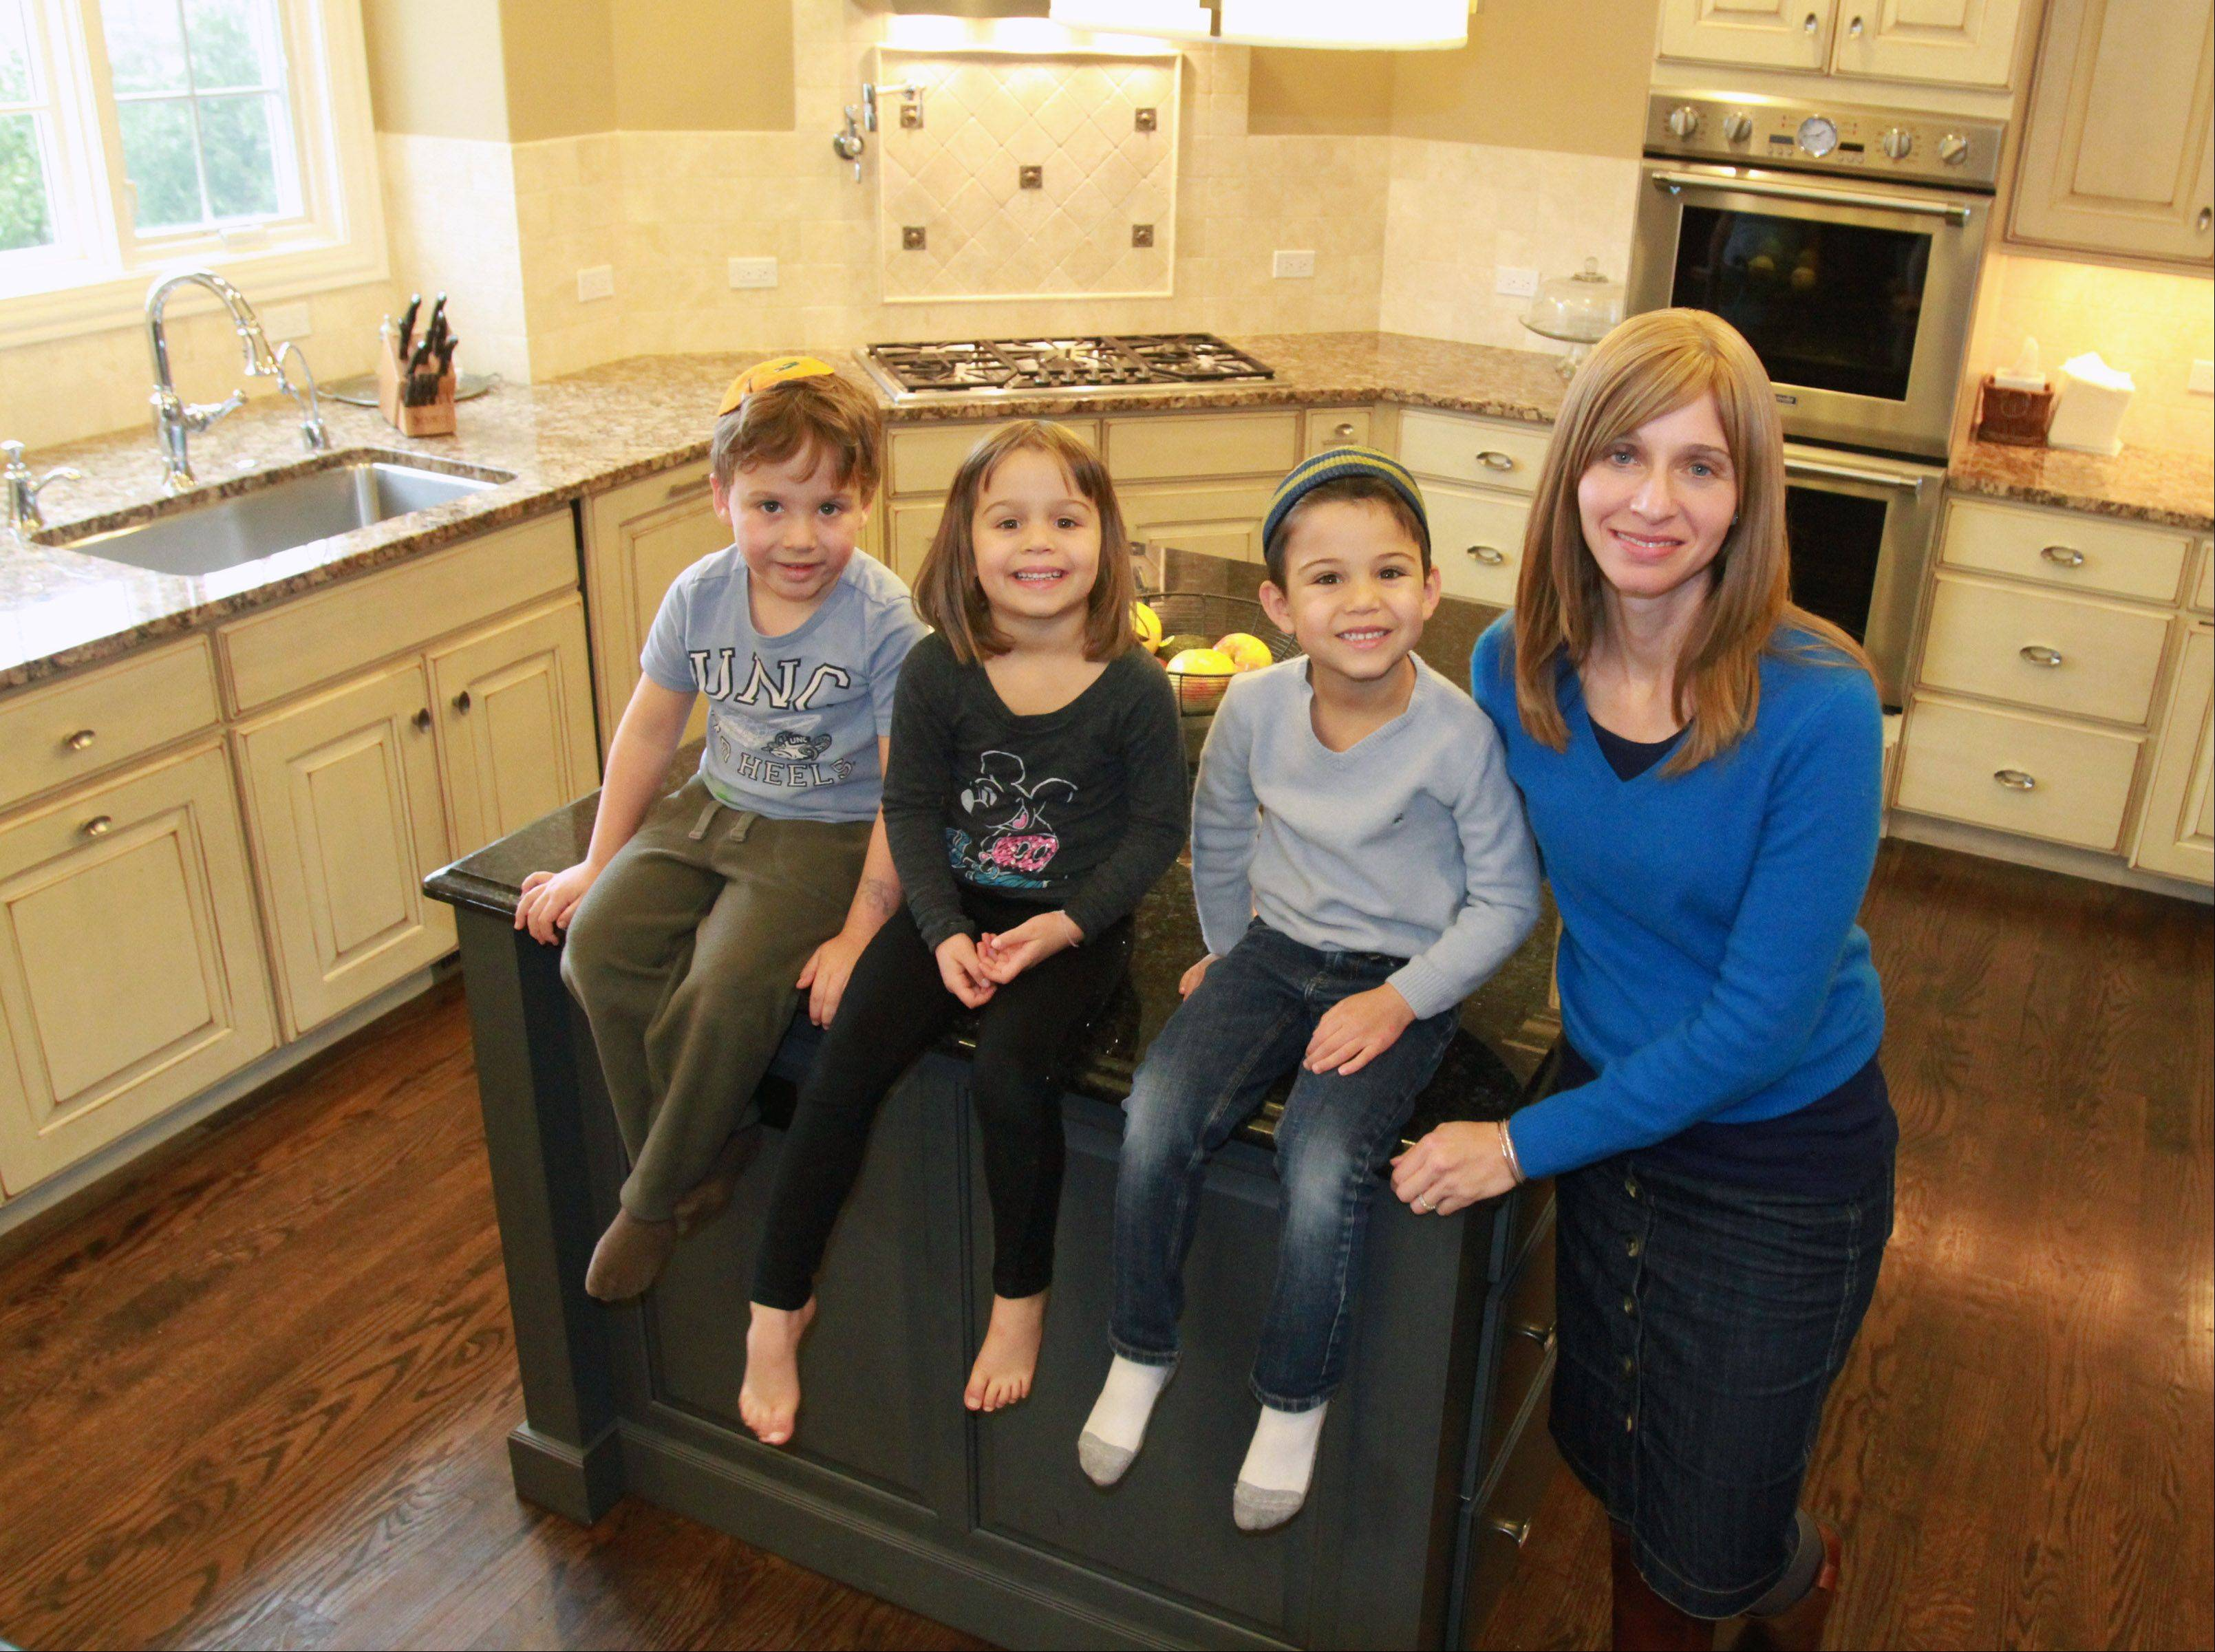 Robbie Fretzin enjoys her new ktichen with her children Estar, center, and Eli, right, with their friend, Judah Will, far left, all age 5, at her home in Skokie.